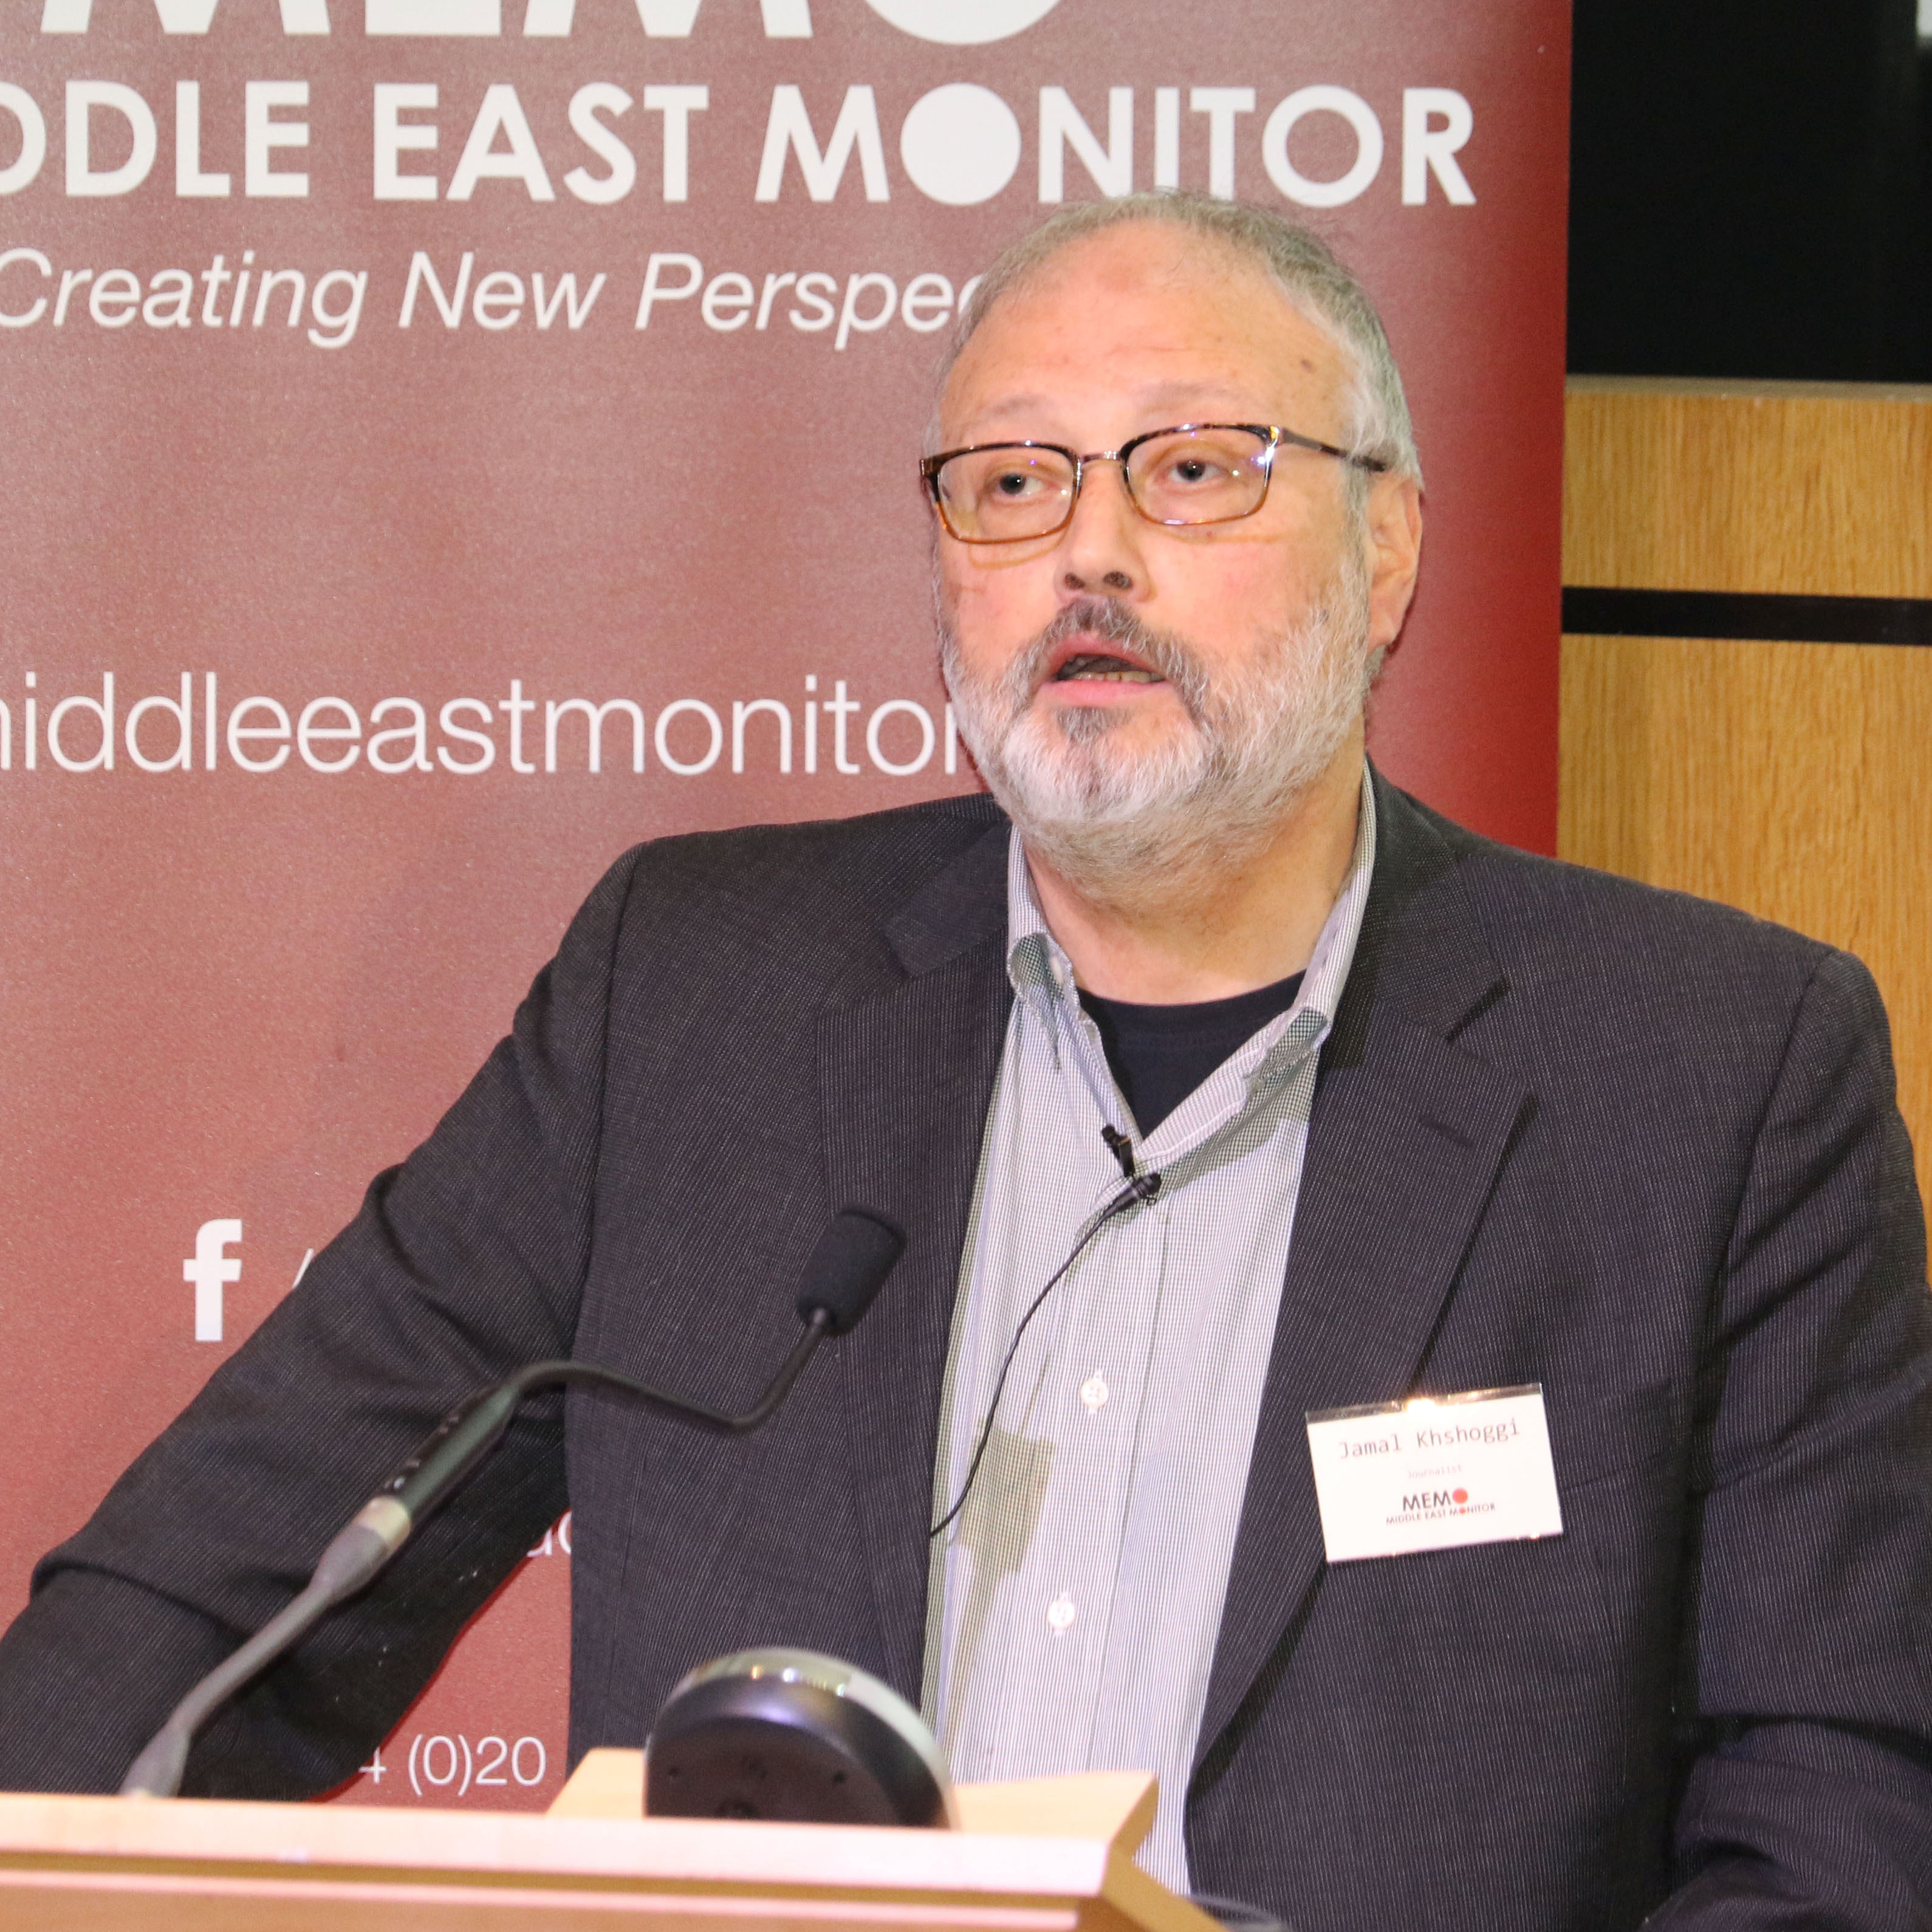 new concept b83e0 ebbce Jamal Khashoggi Killed